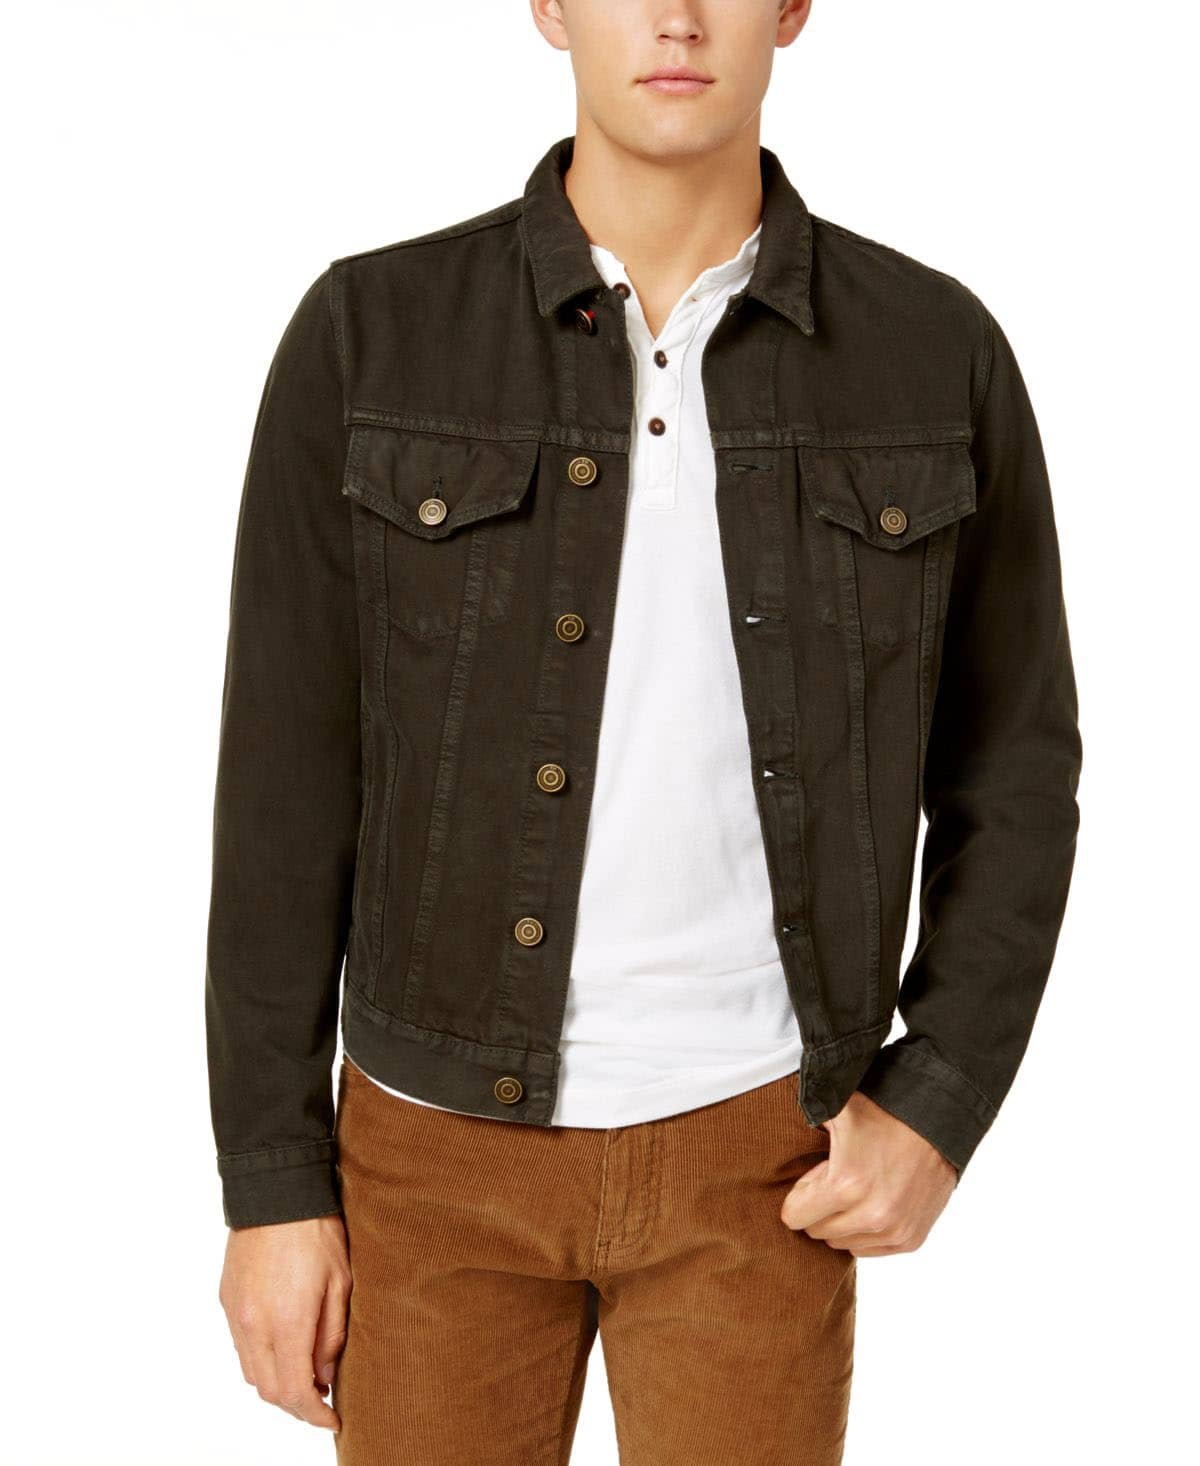 Tommy Hilfiger Men's Garment Dyed Denim Jacket (XL, Dark Brown) by Tommy Hilfiger